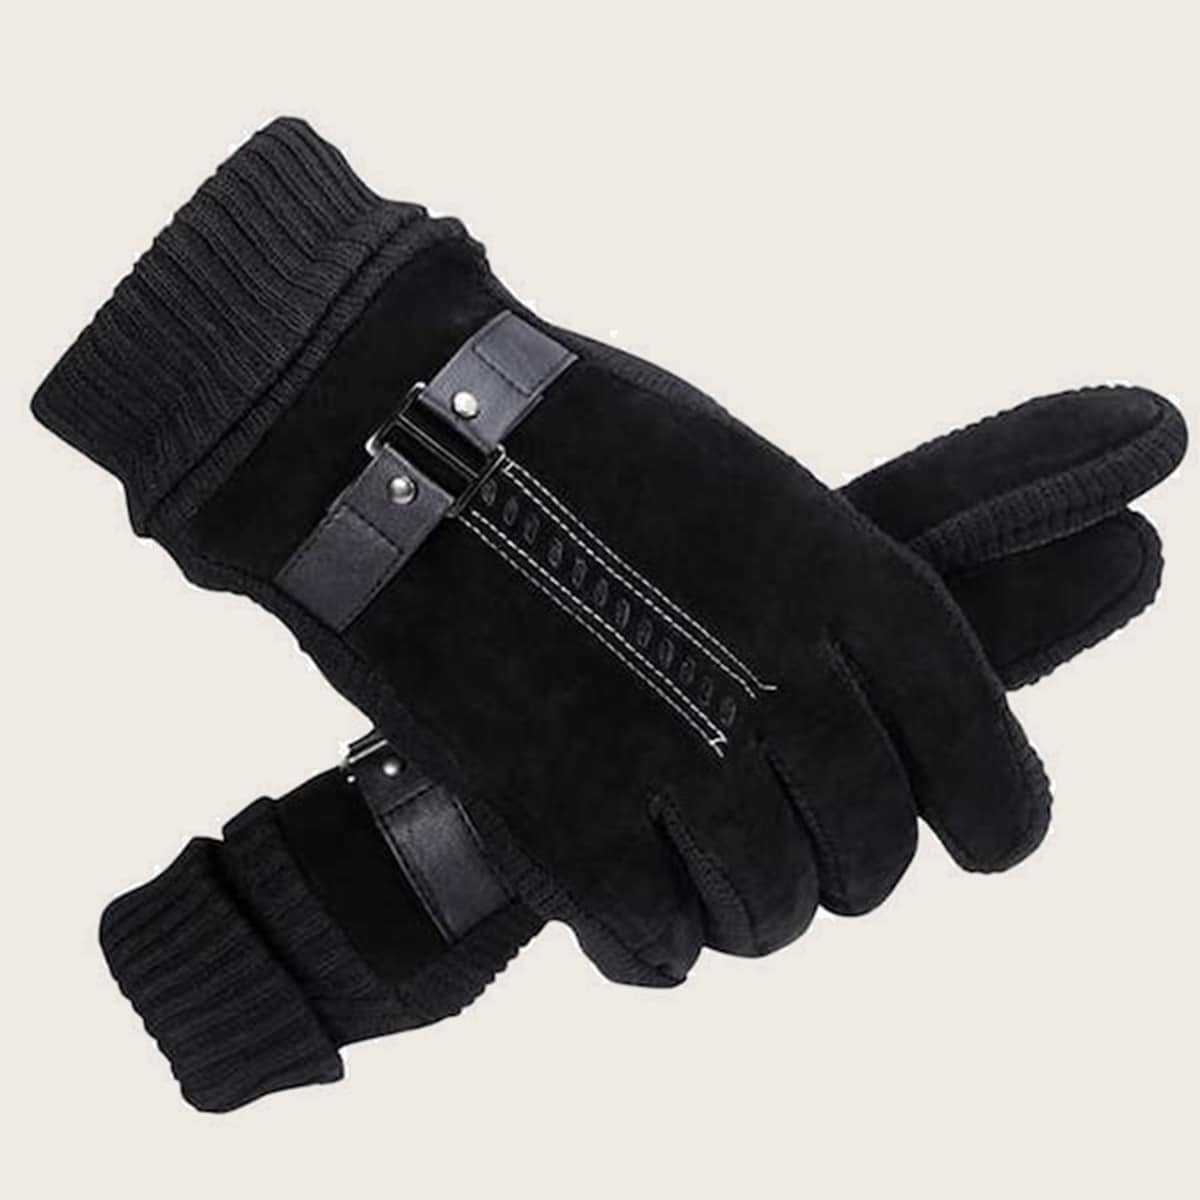 Guys Contrast Knit Gloves 1pair in Black by ROMWE on GOOFASH